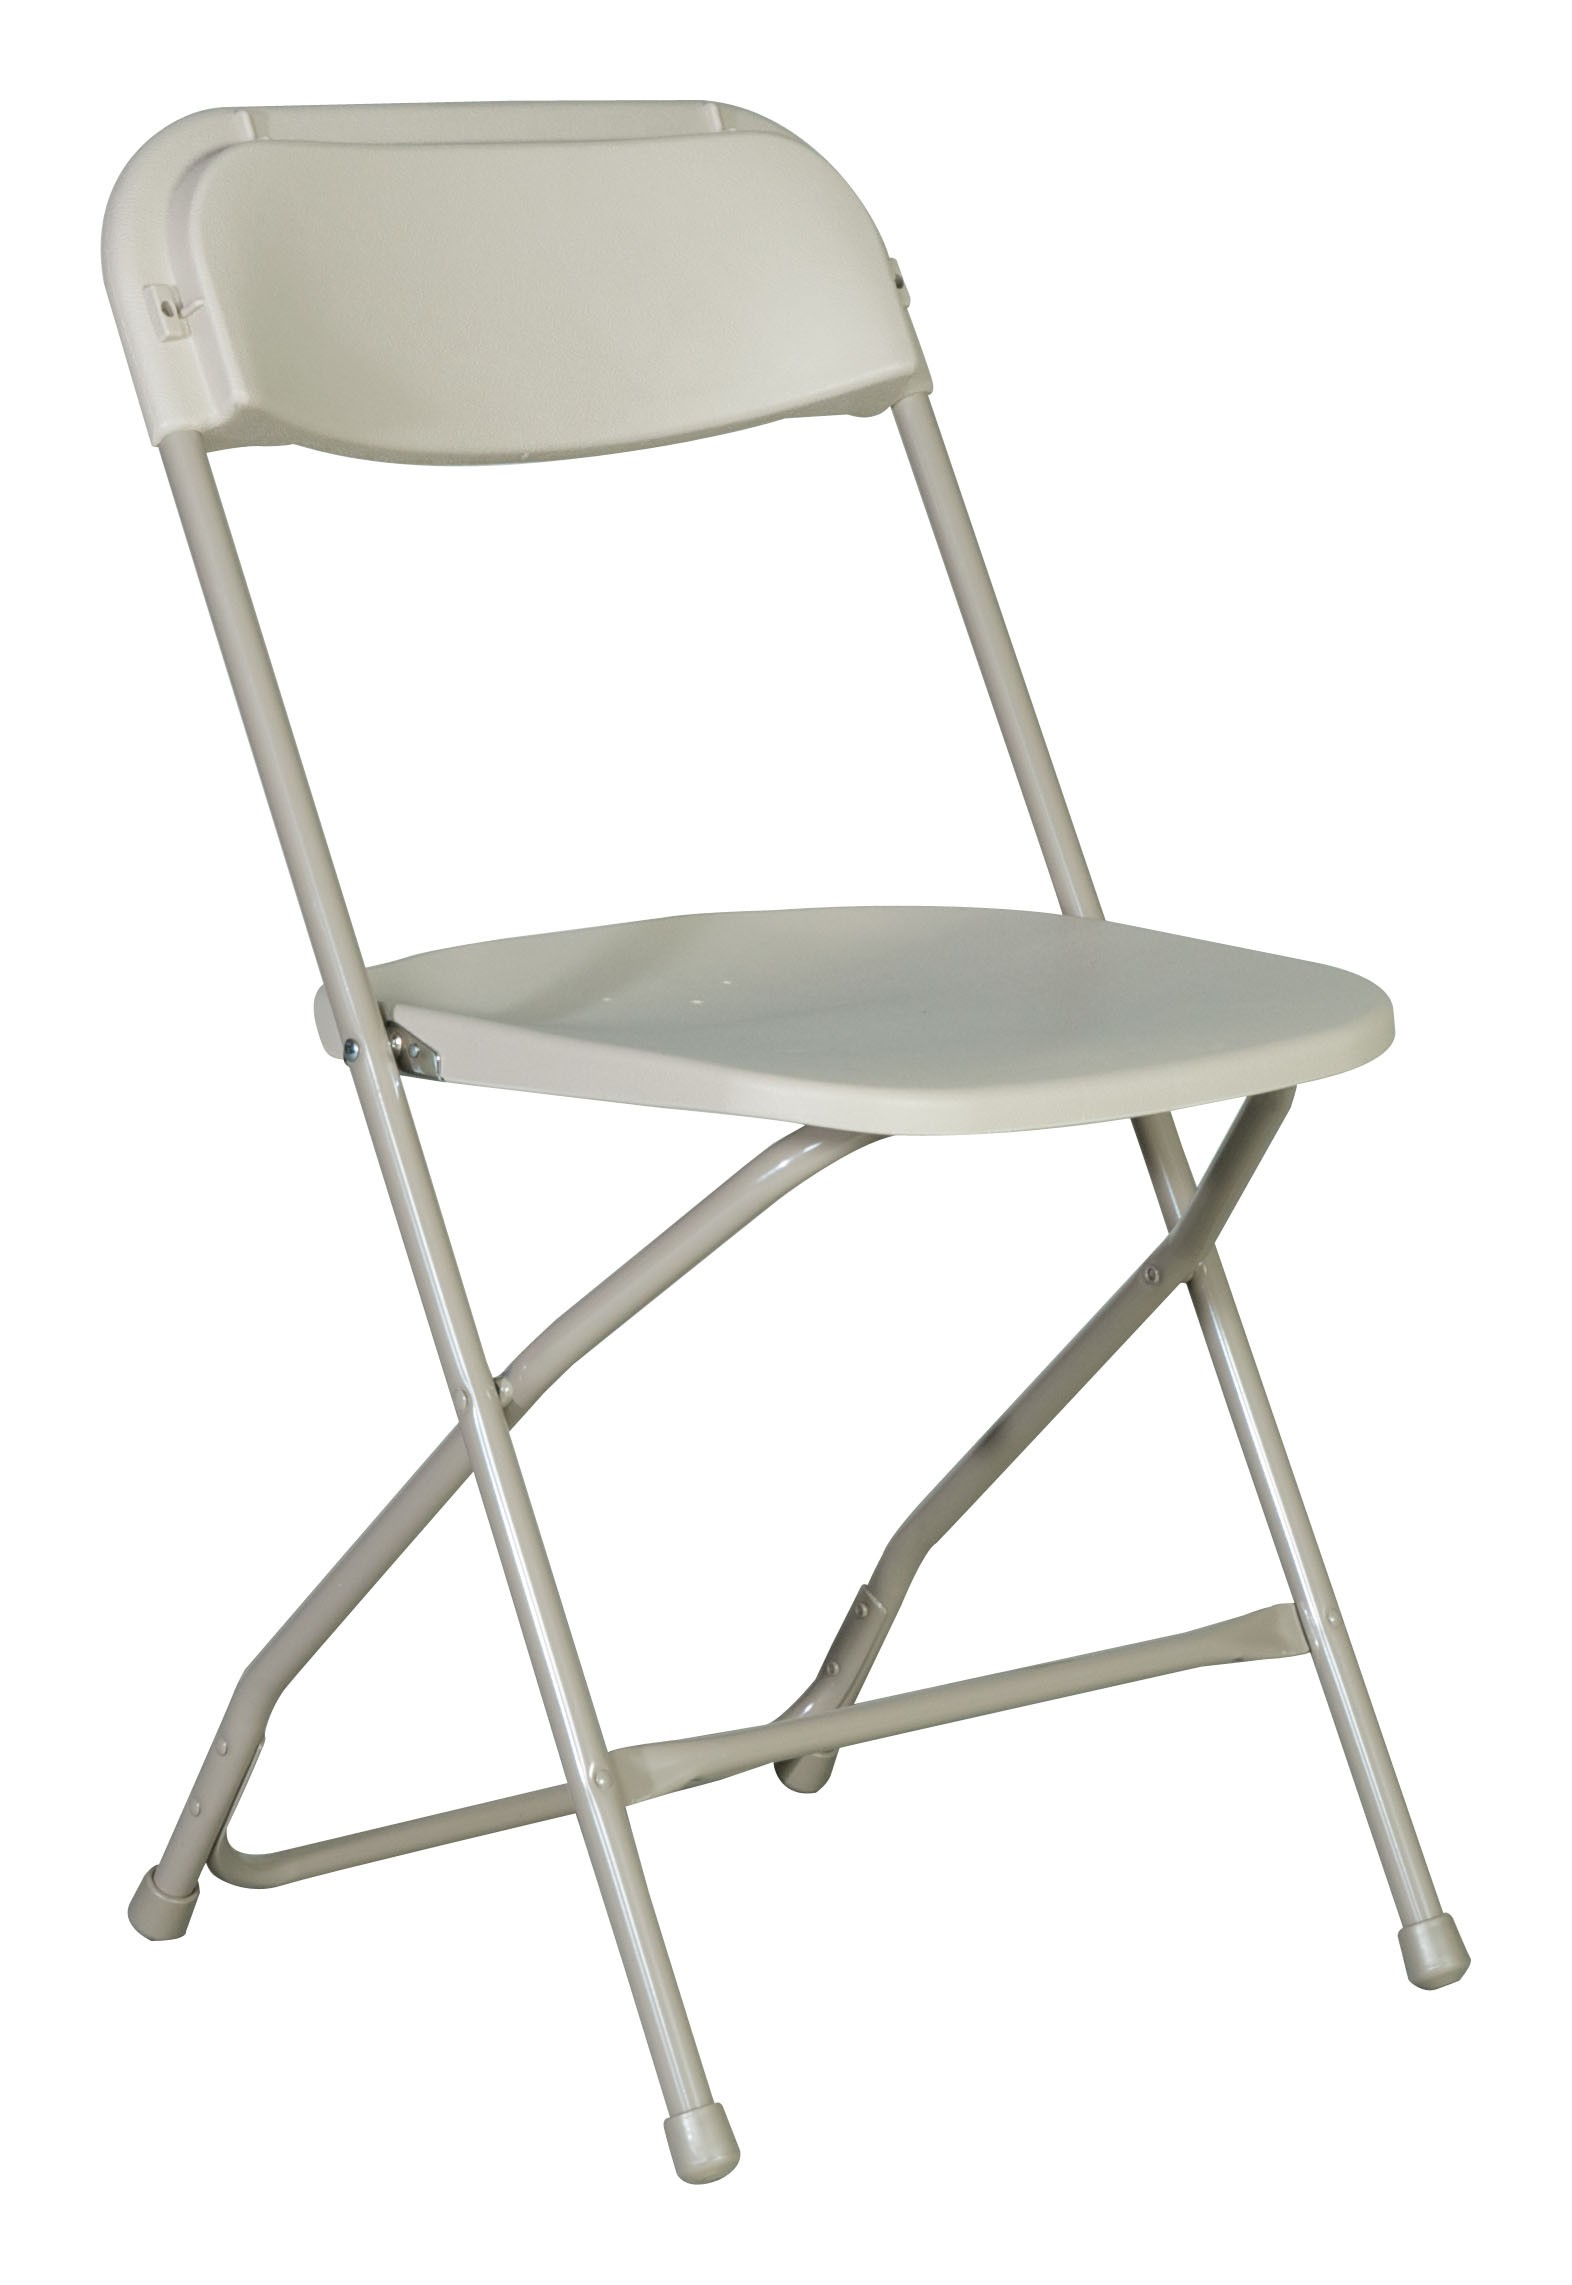 Acrylic Folding Chairs Off White Folding Chair Roland L Appleton Inc